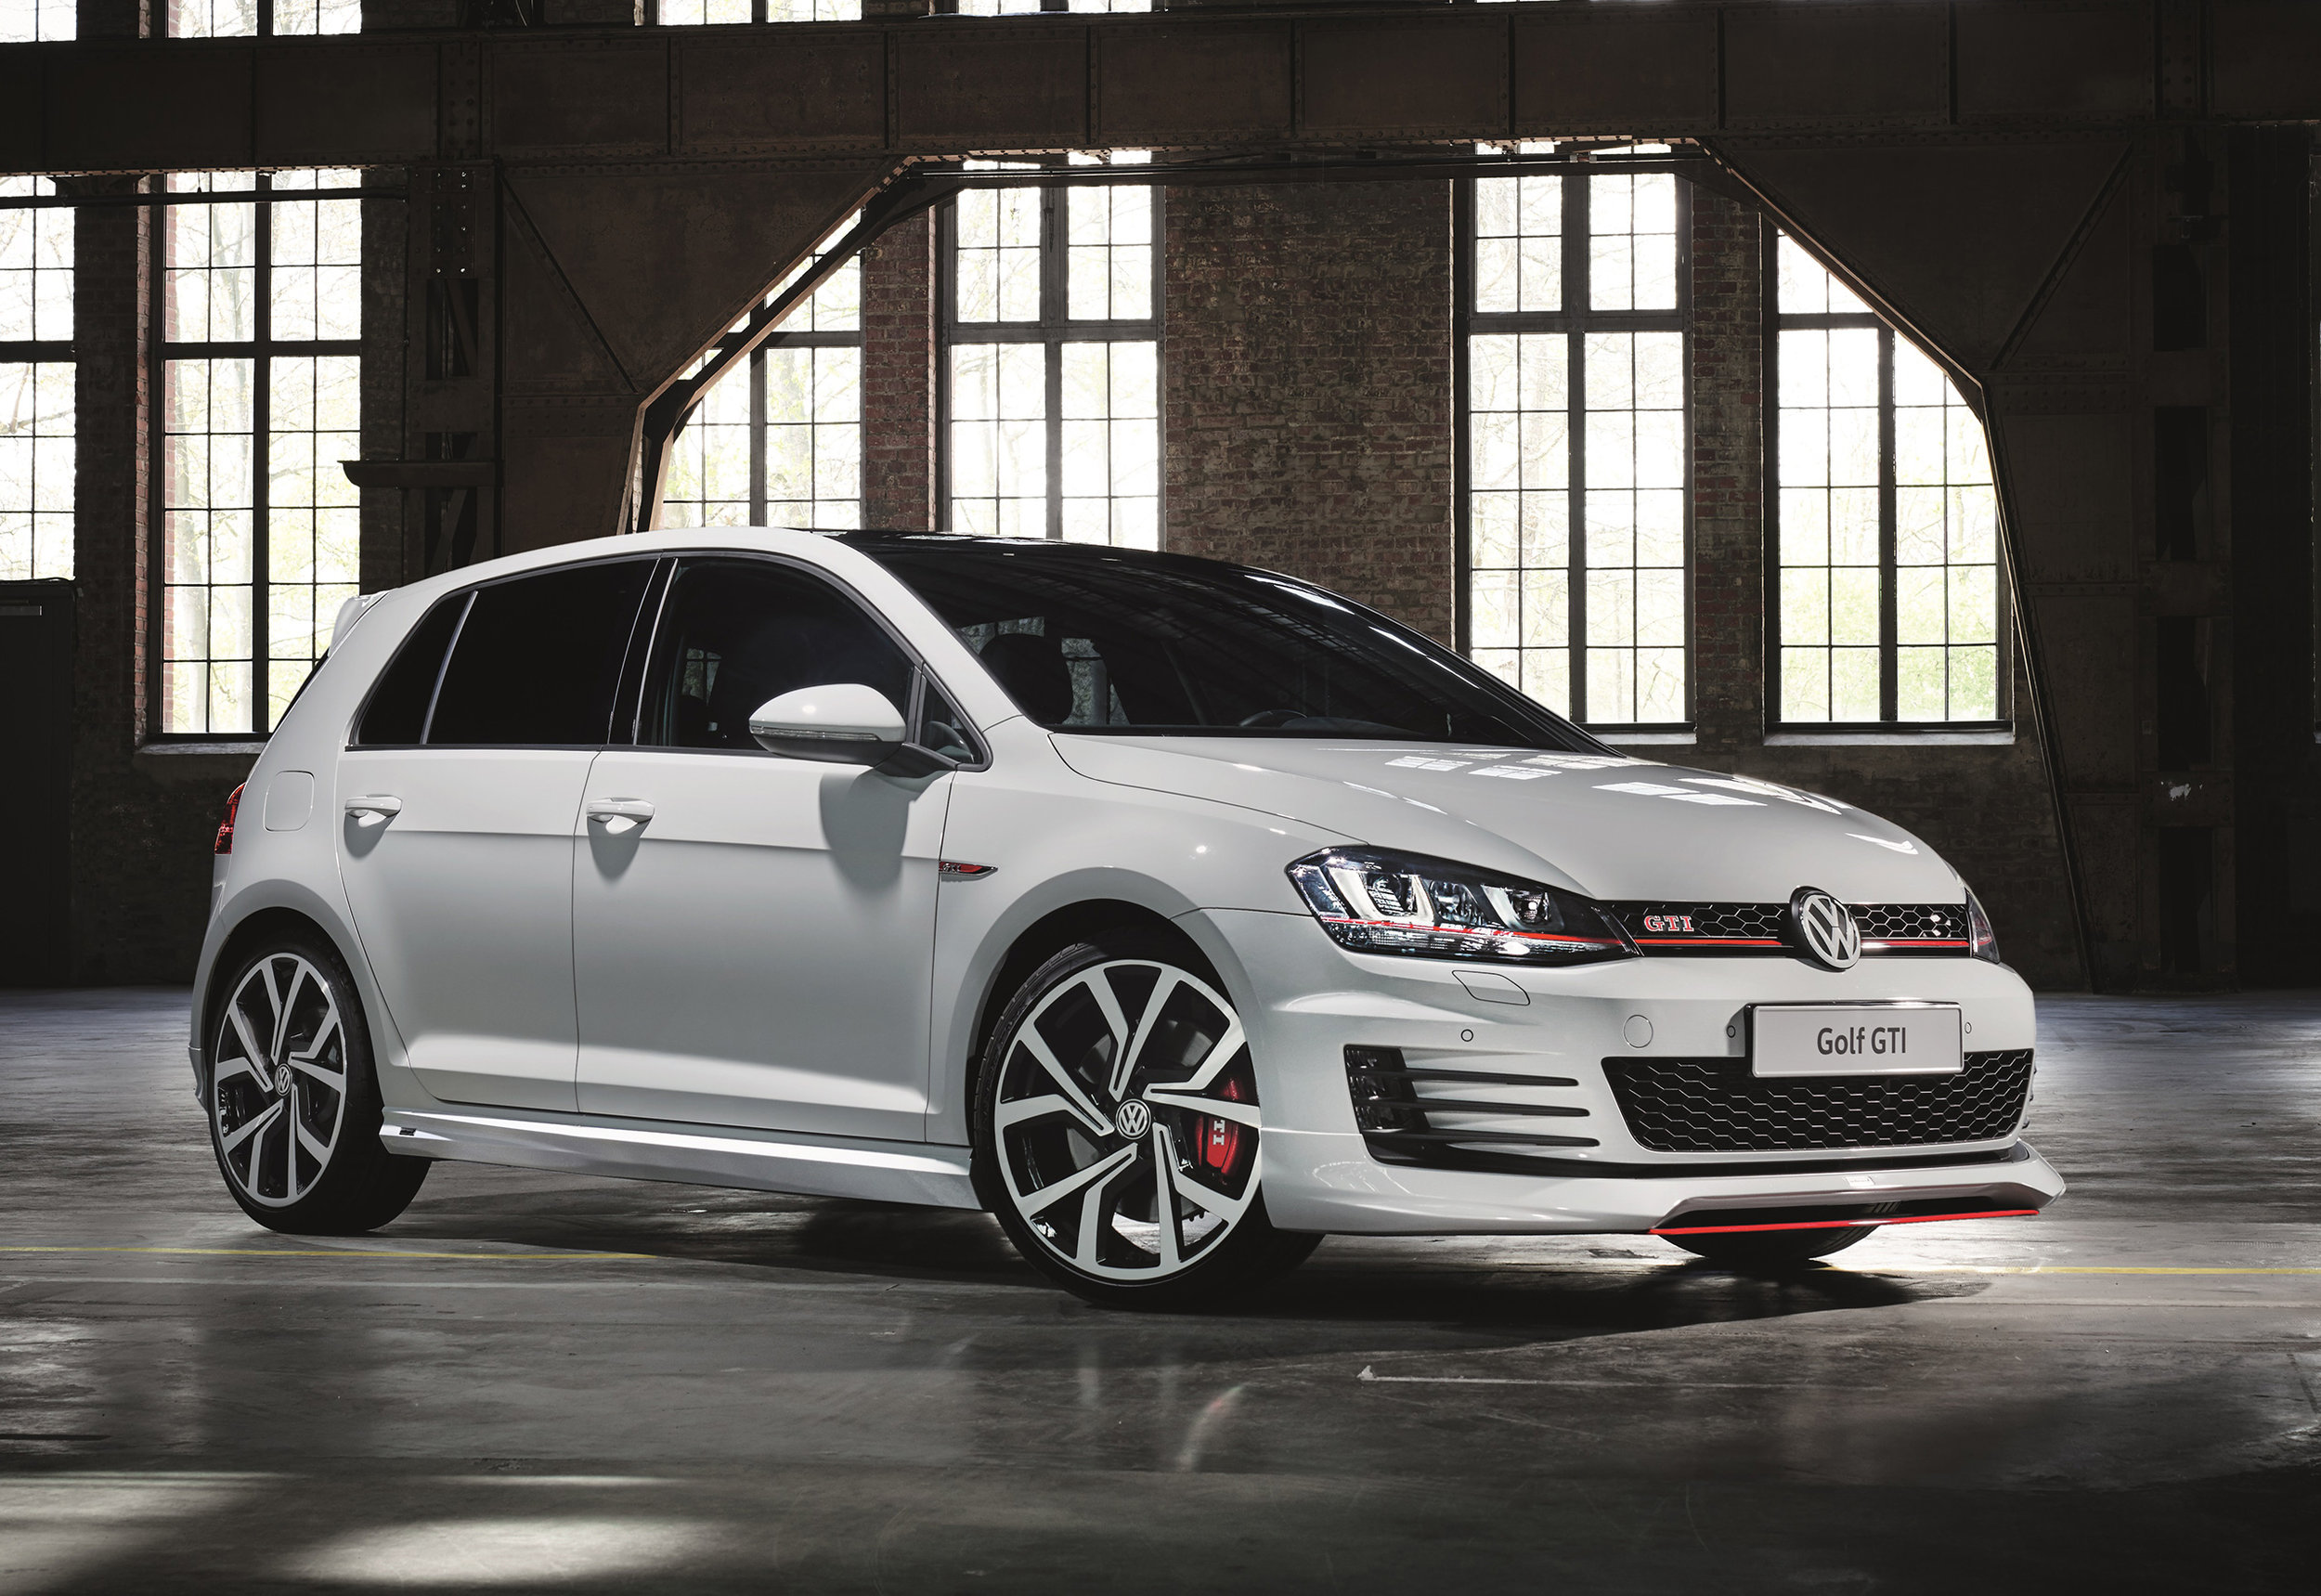 Volkswagen-Performance-Golfs-and-Oettinger-GTI-front.jpg